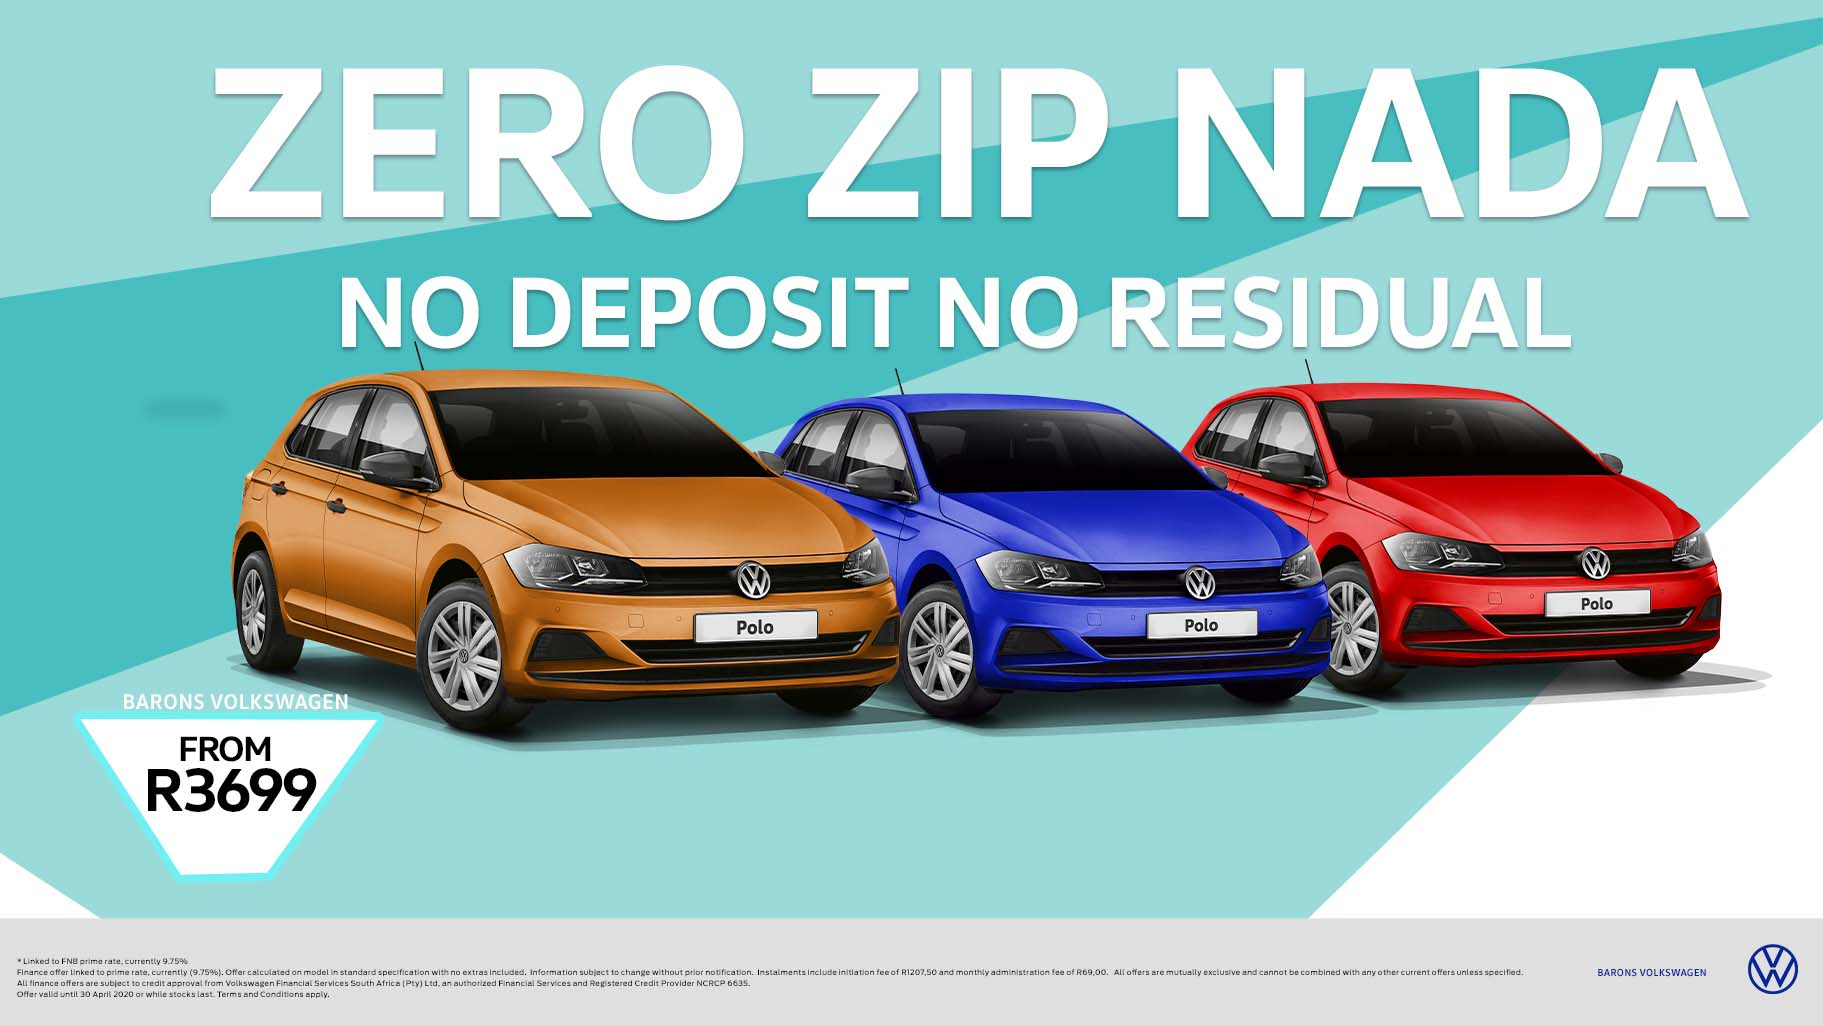 Barons N1 no deposit VW Polo car offer